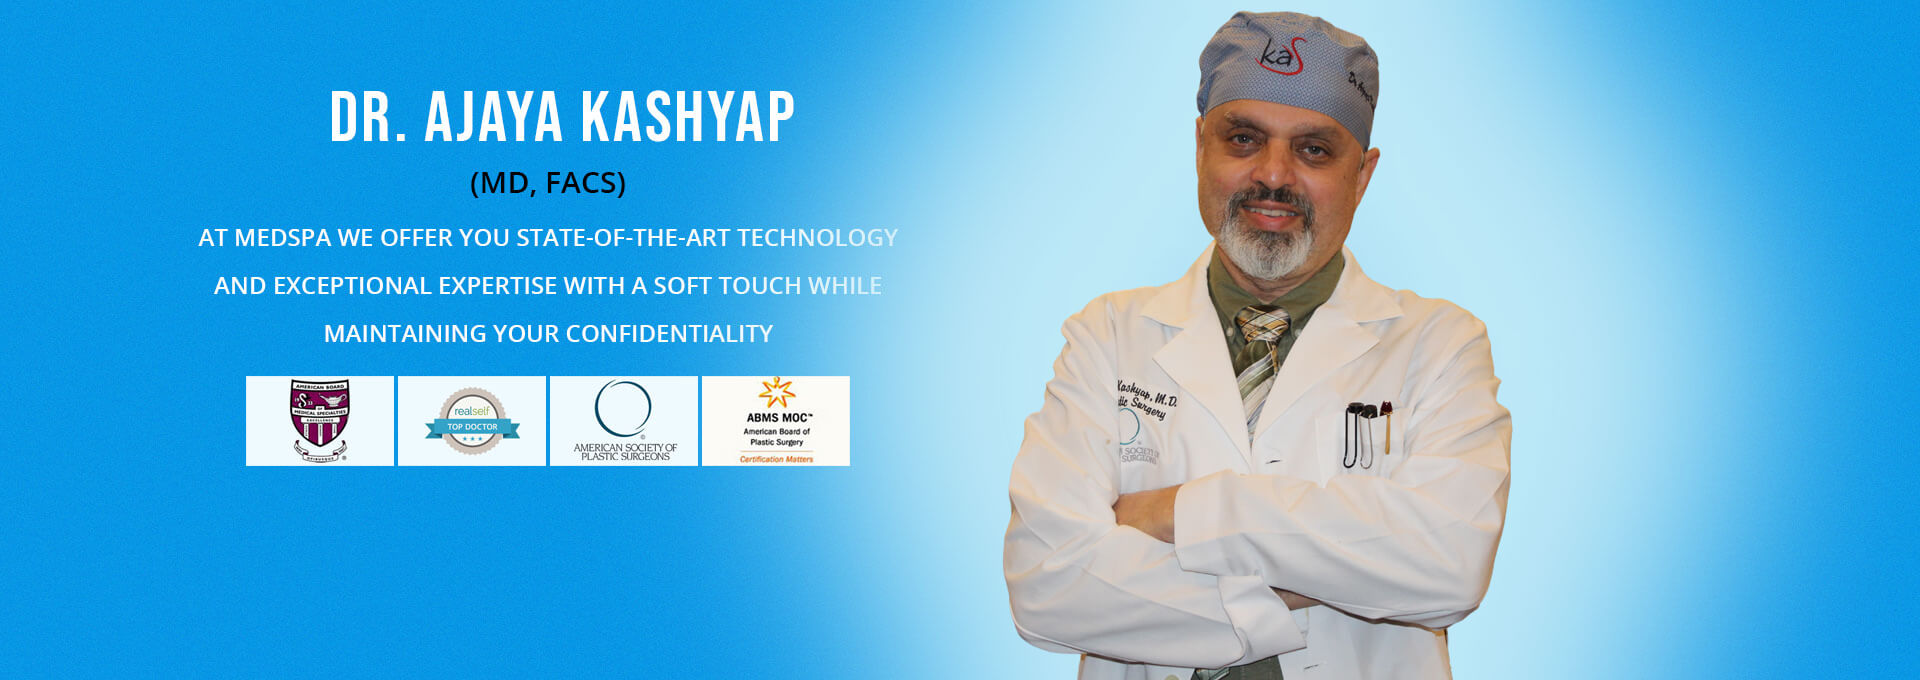 Dr Ajaya Kashyap Plastic Surgeon